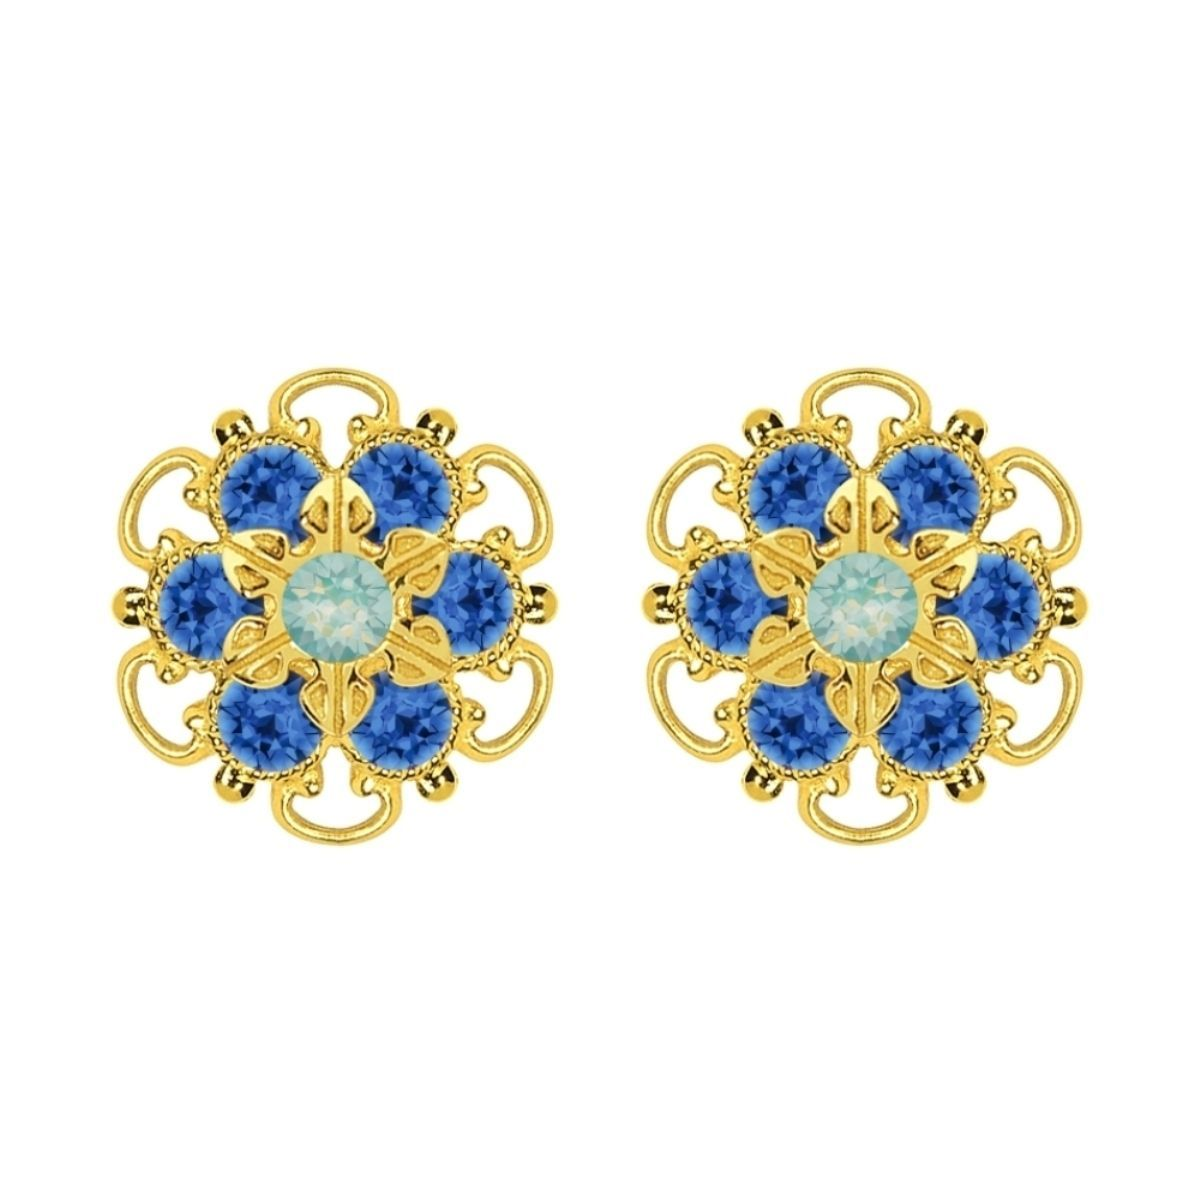 Lucia Costin Gold Over Sterling Silver Mint Blue/ Blue Earrings